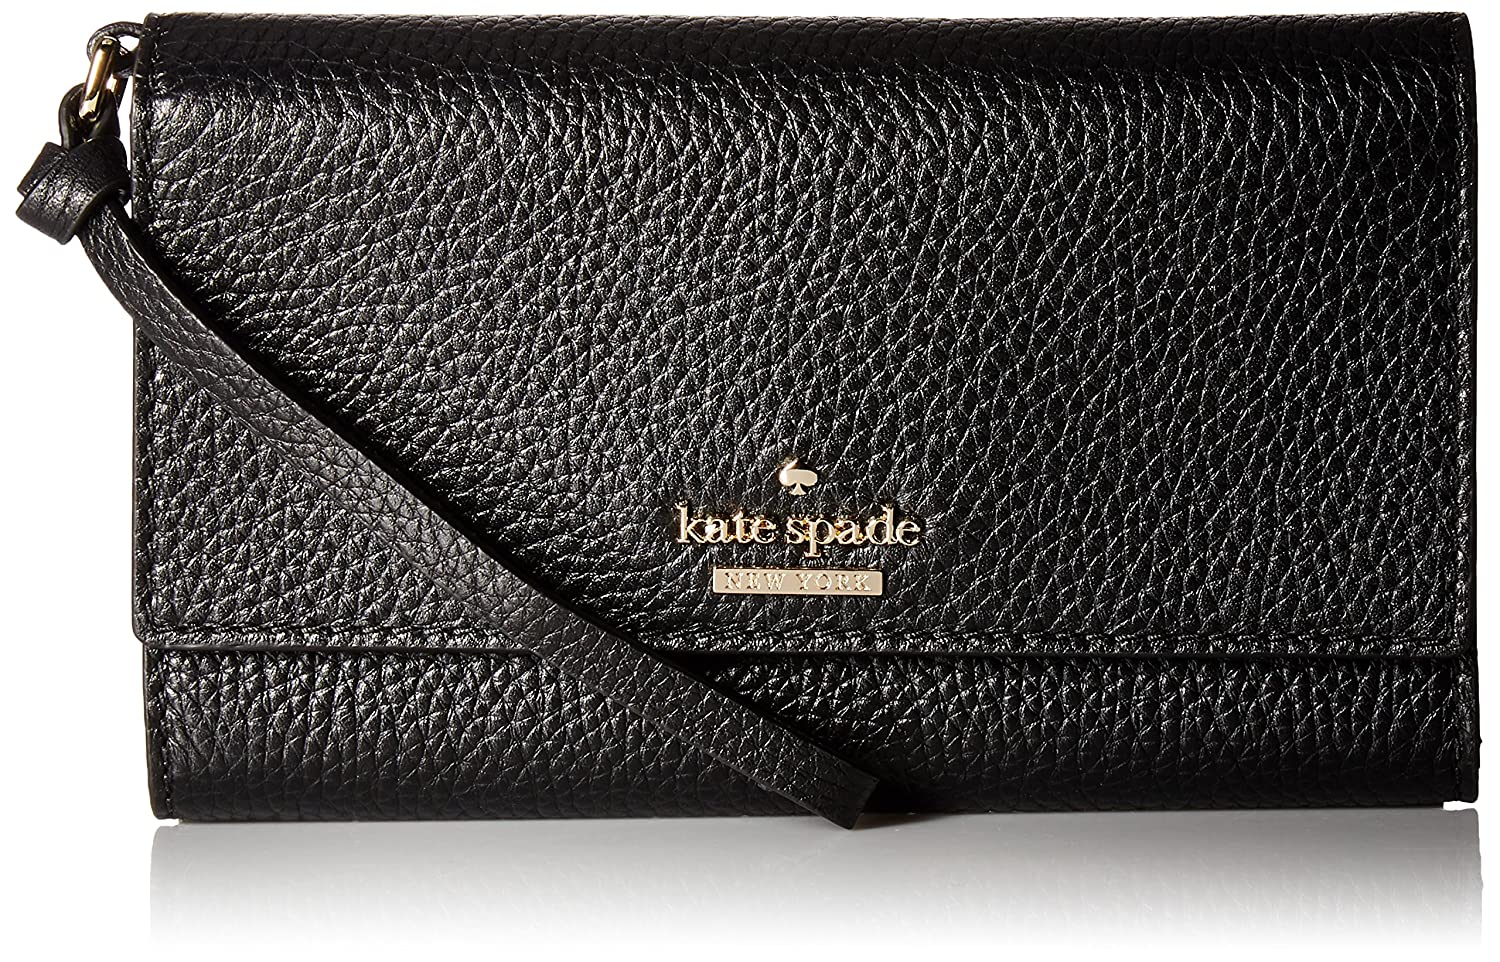 Kate Spade New York Women's Jackson Street Malorie Wallet Black One Size PWRU5666-001